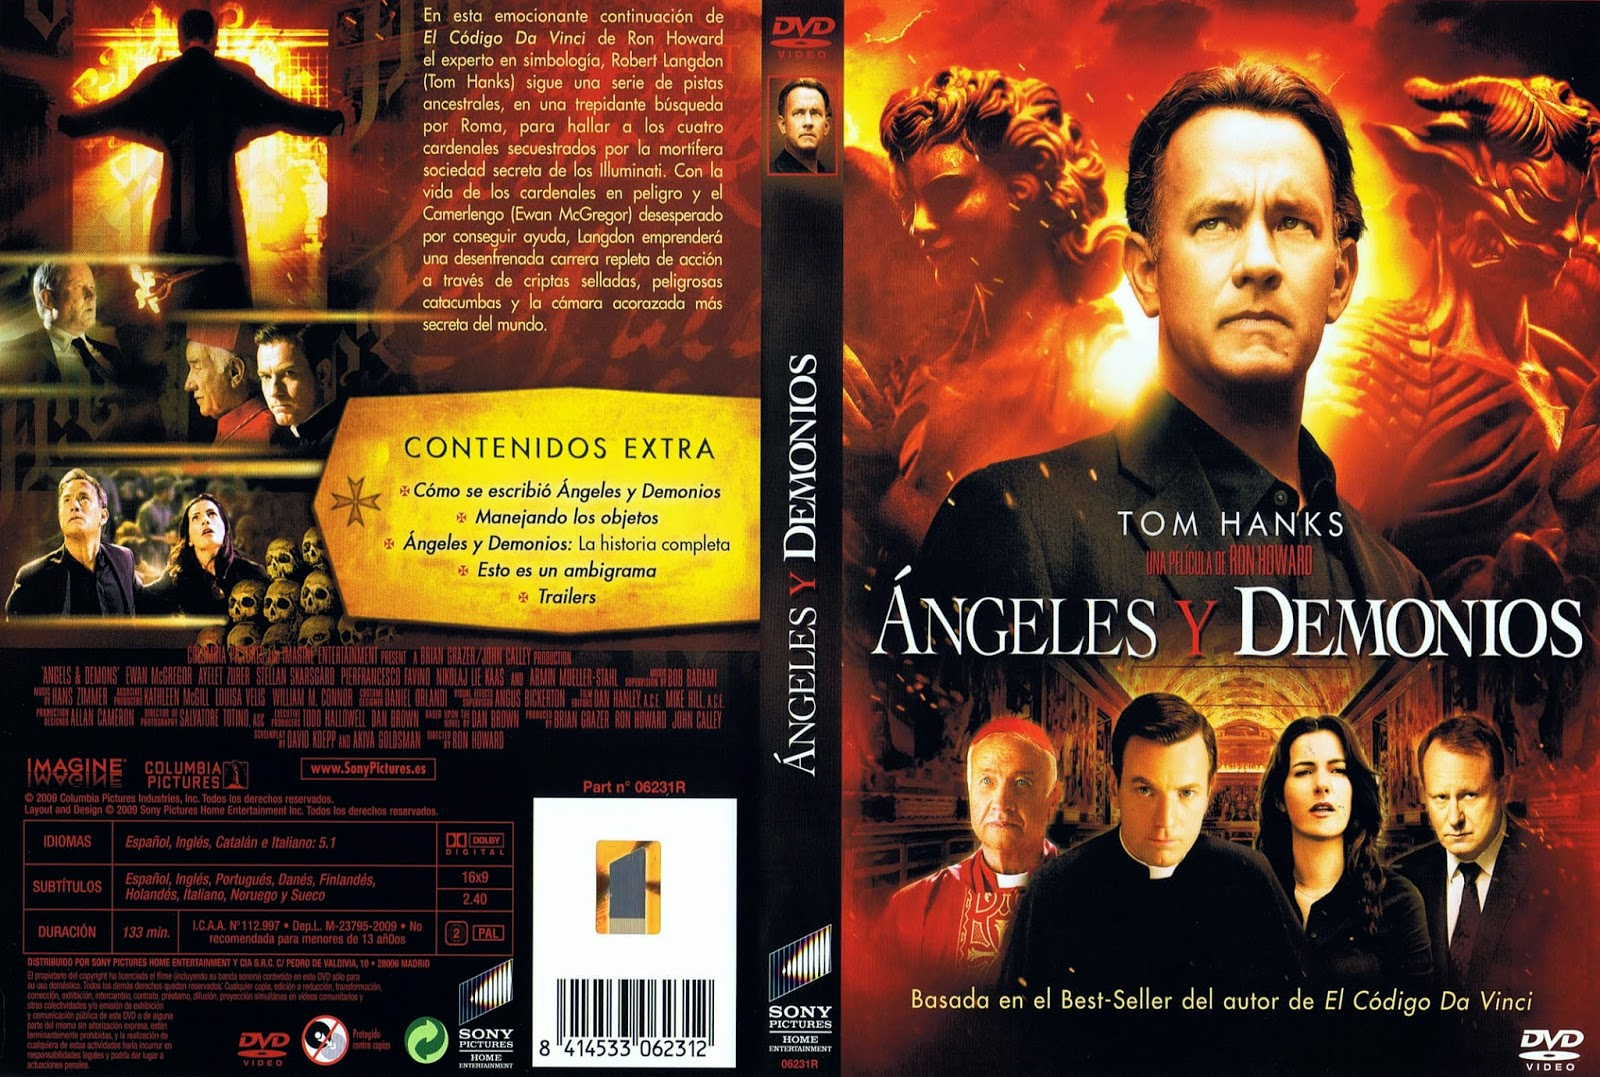 Angeles y Demonios DVD